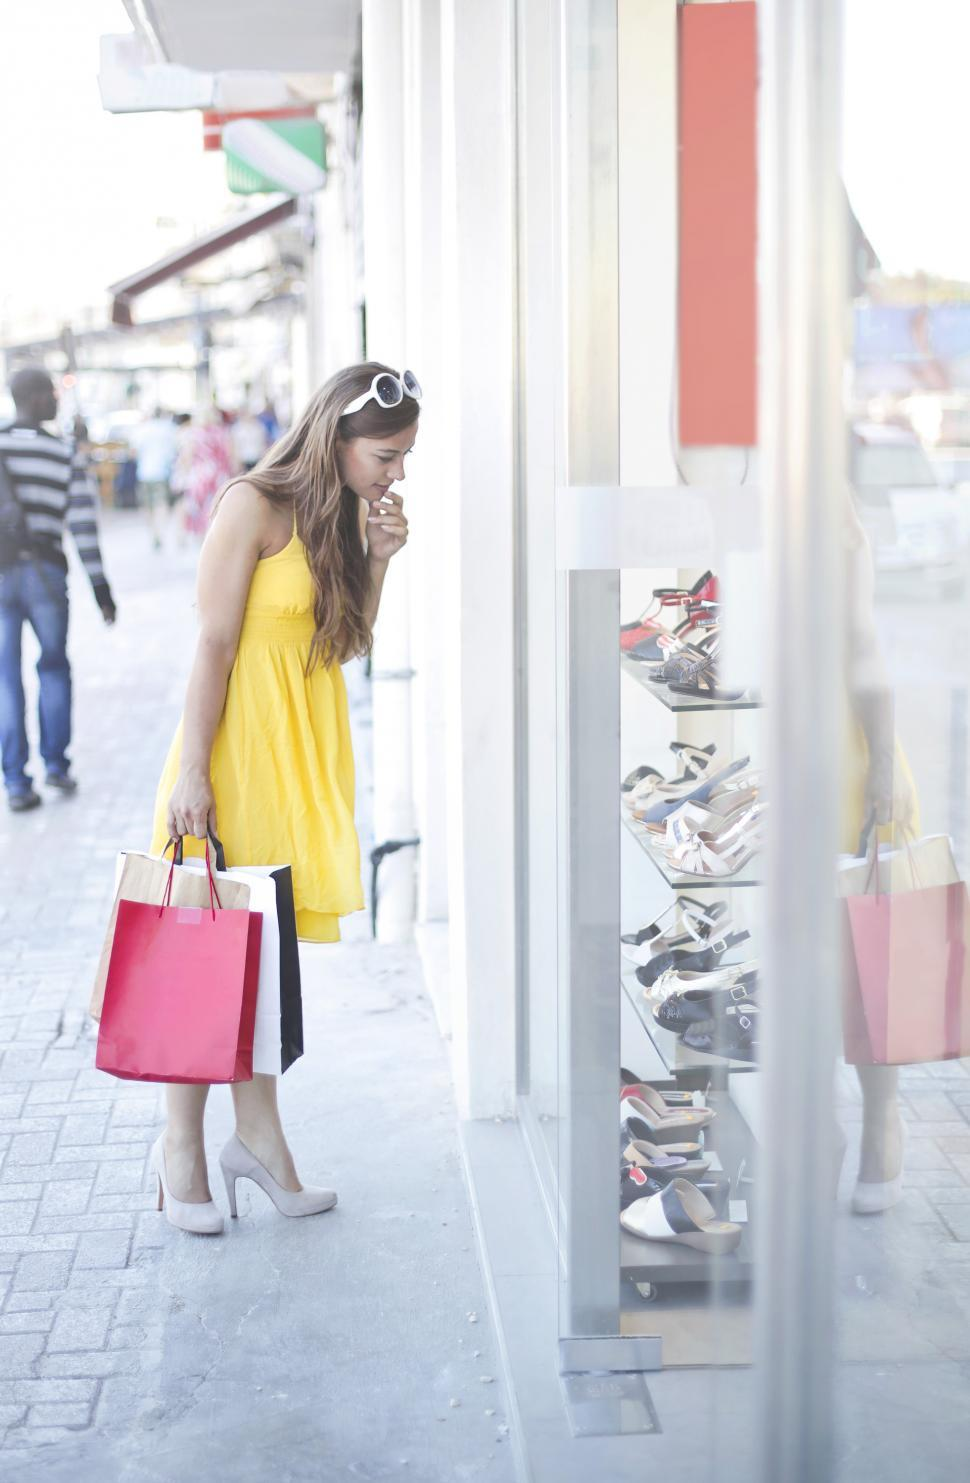 Download Free Stock HD Photo of A young blonde woman with shopping bags looks at a shoes display Online